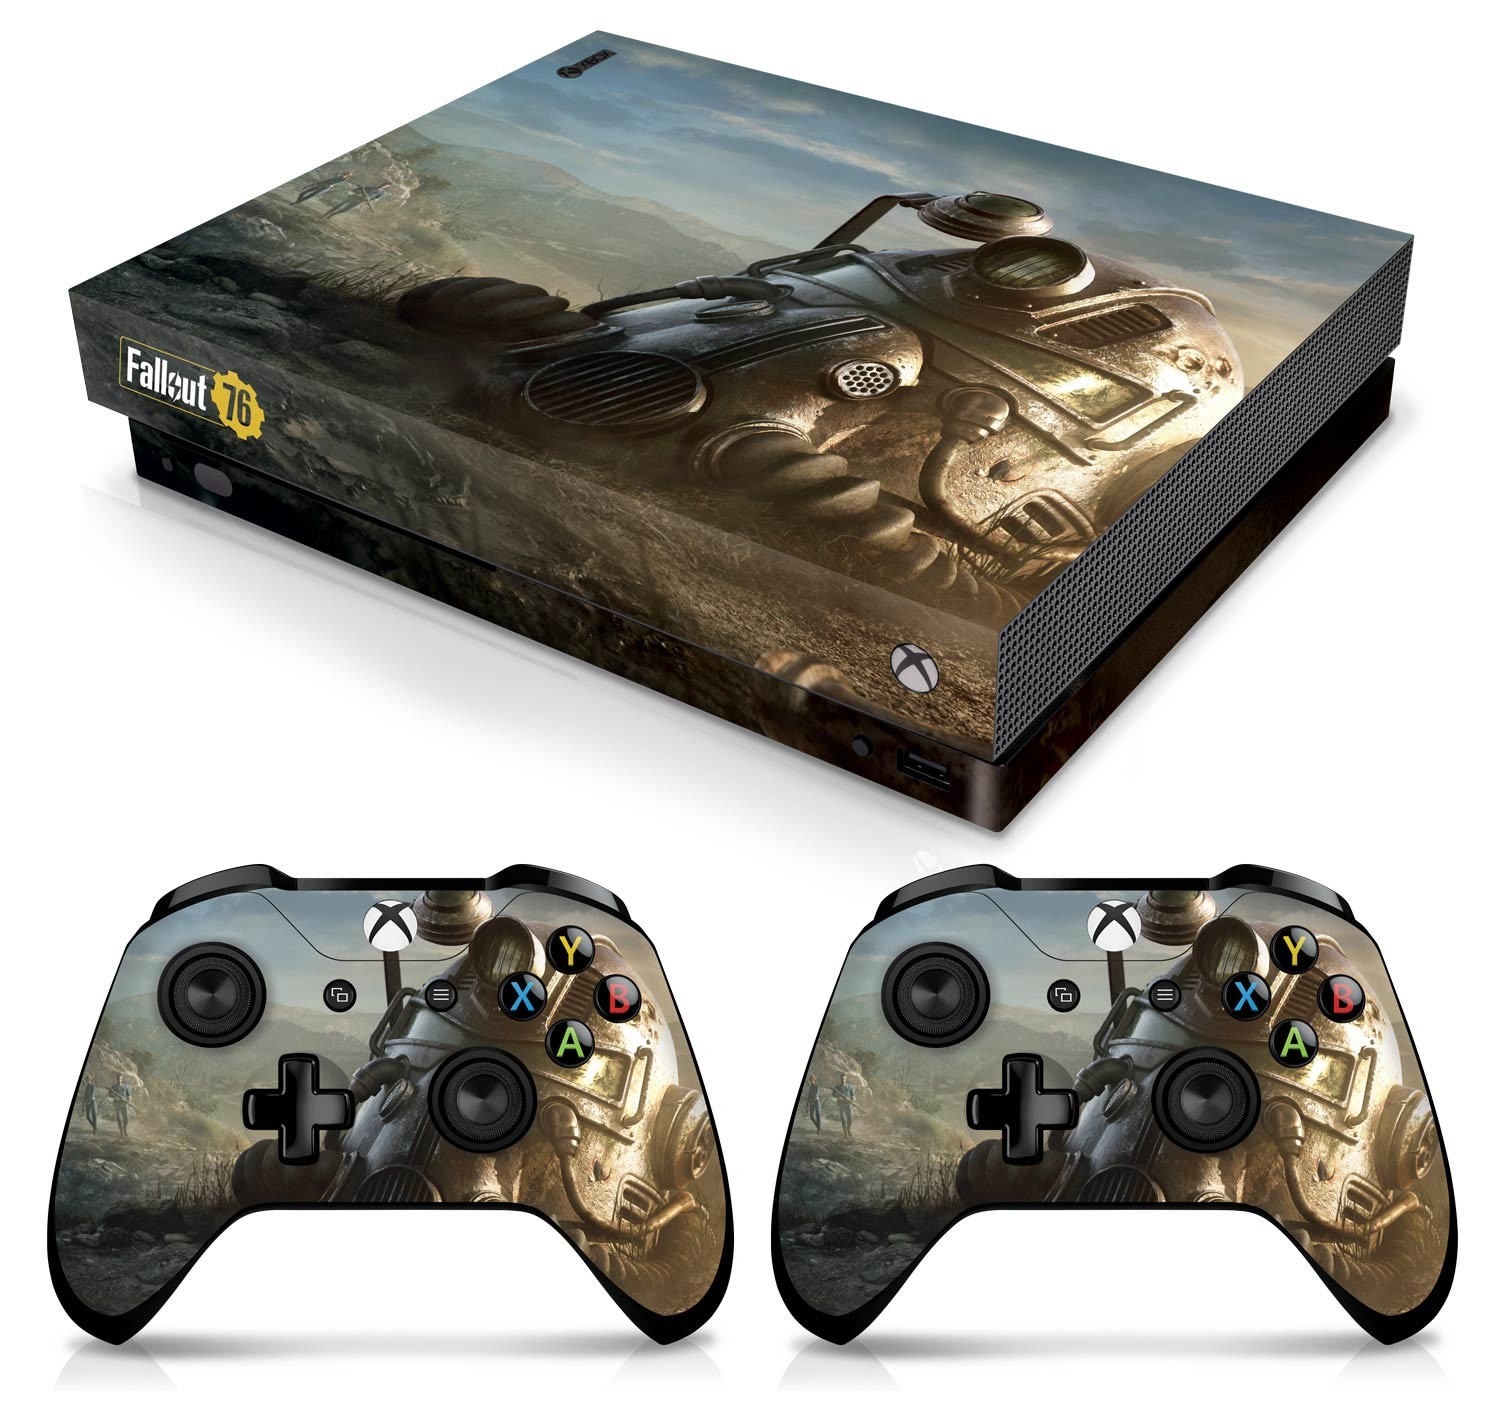 Officially Licensed Console Skin Bundle for Xbox One X - Fallout - Power Armor Helmet